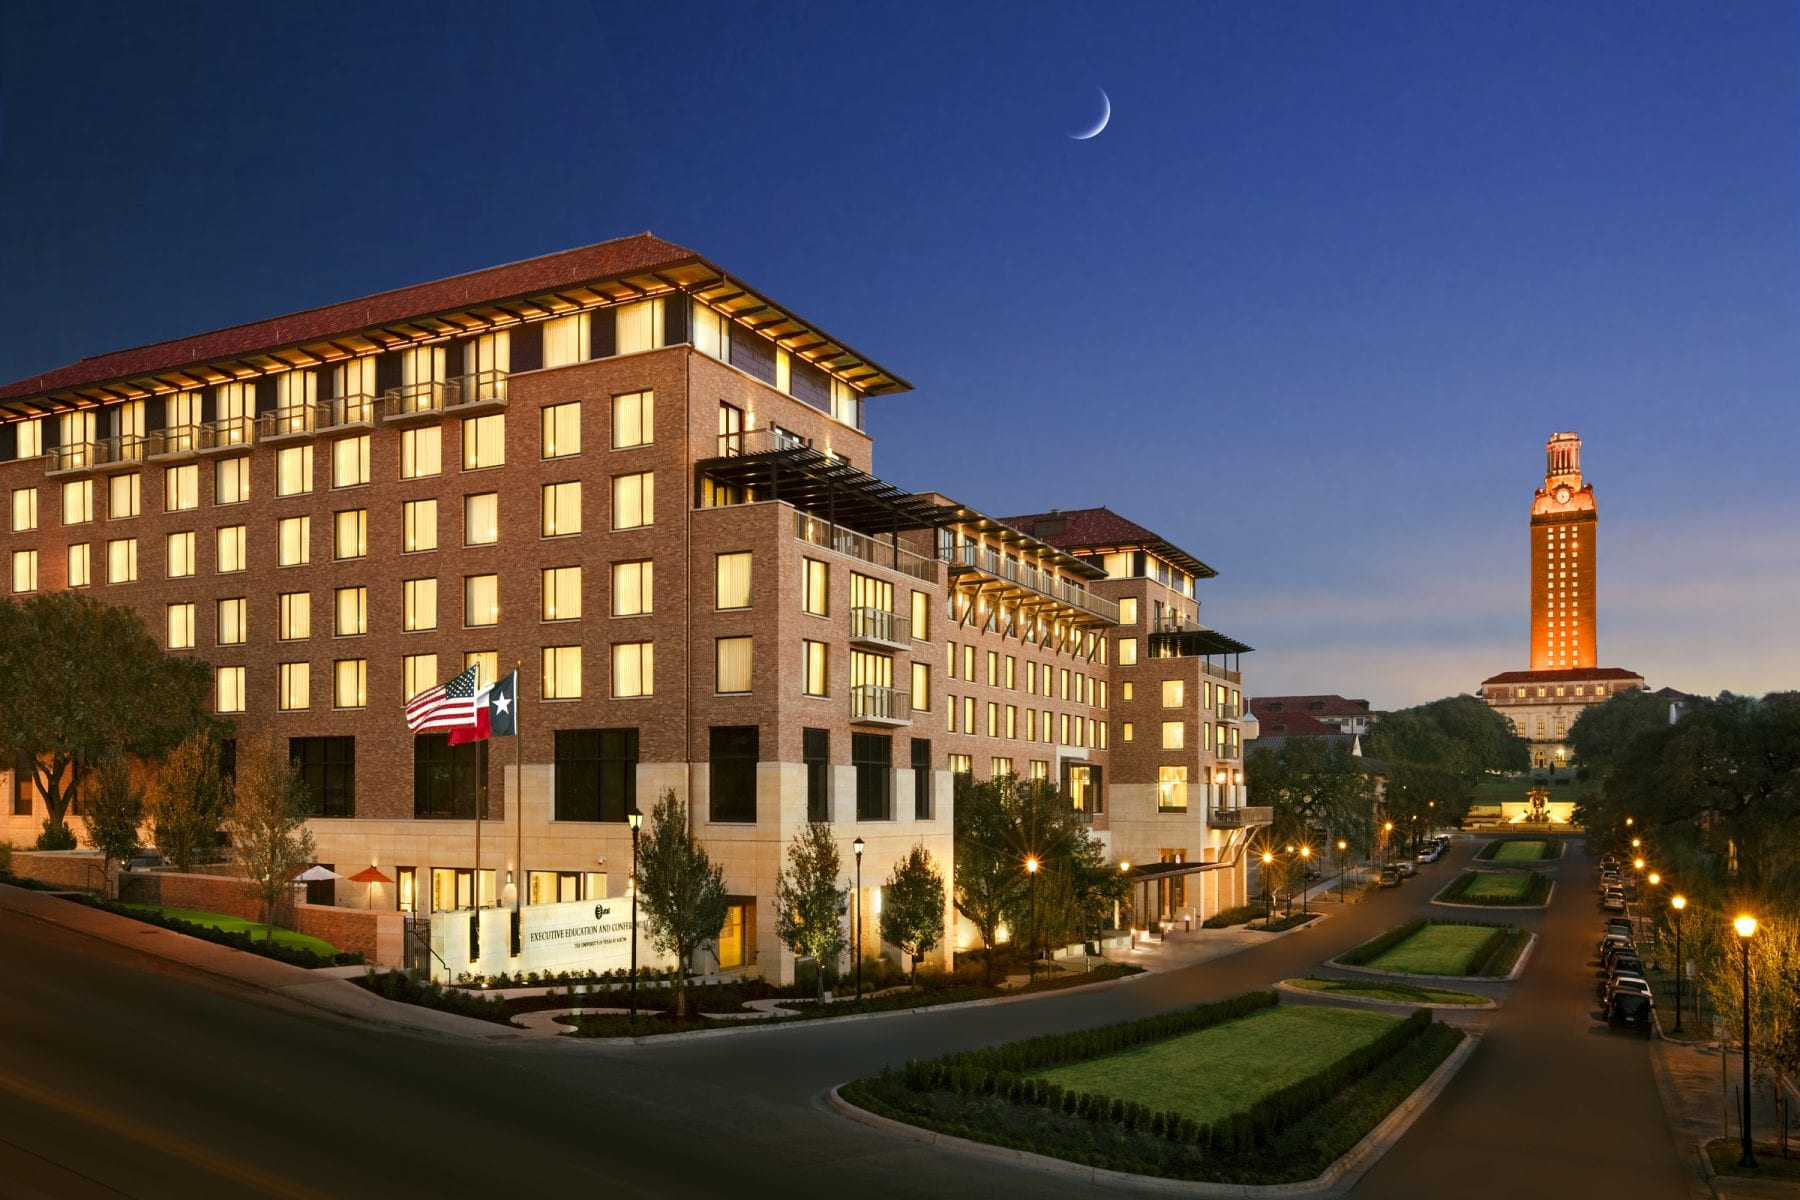 AT&T Hotel and Conference Center